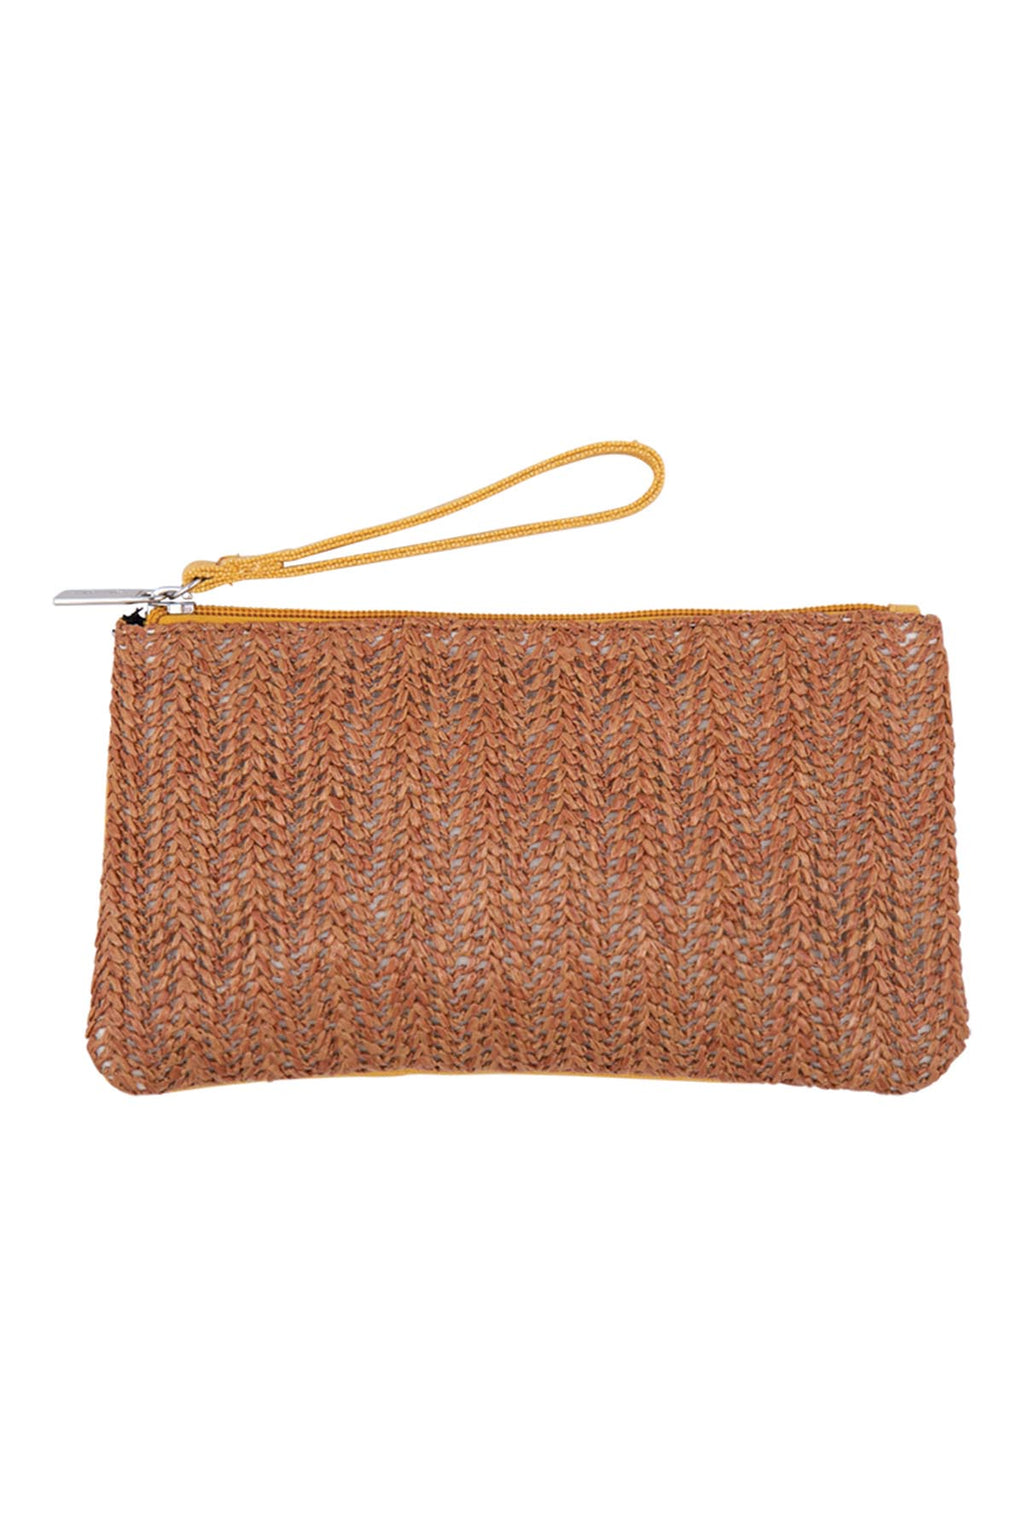 Sable Pouch - Saffron - The Bohemian Corner